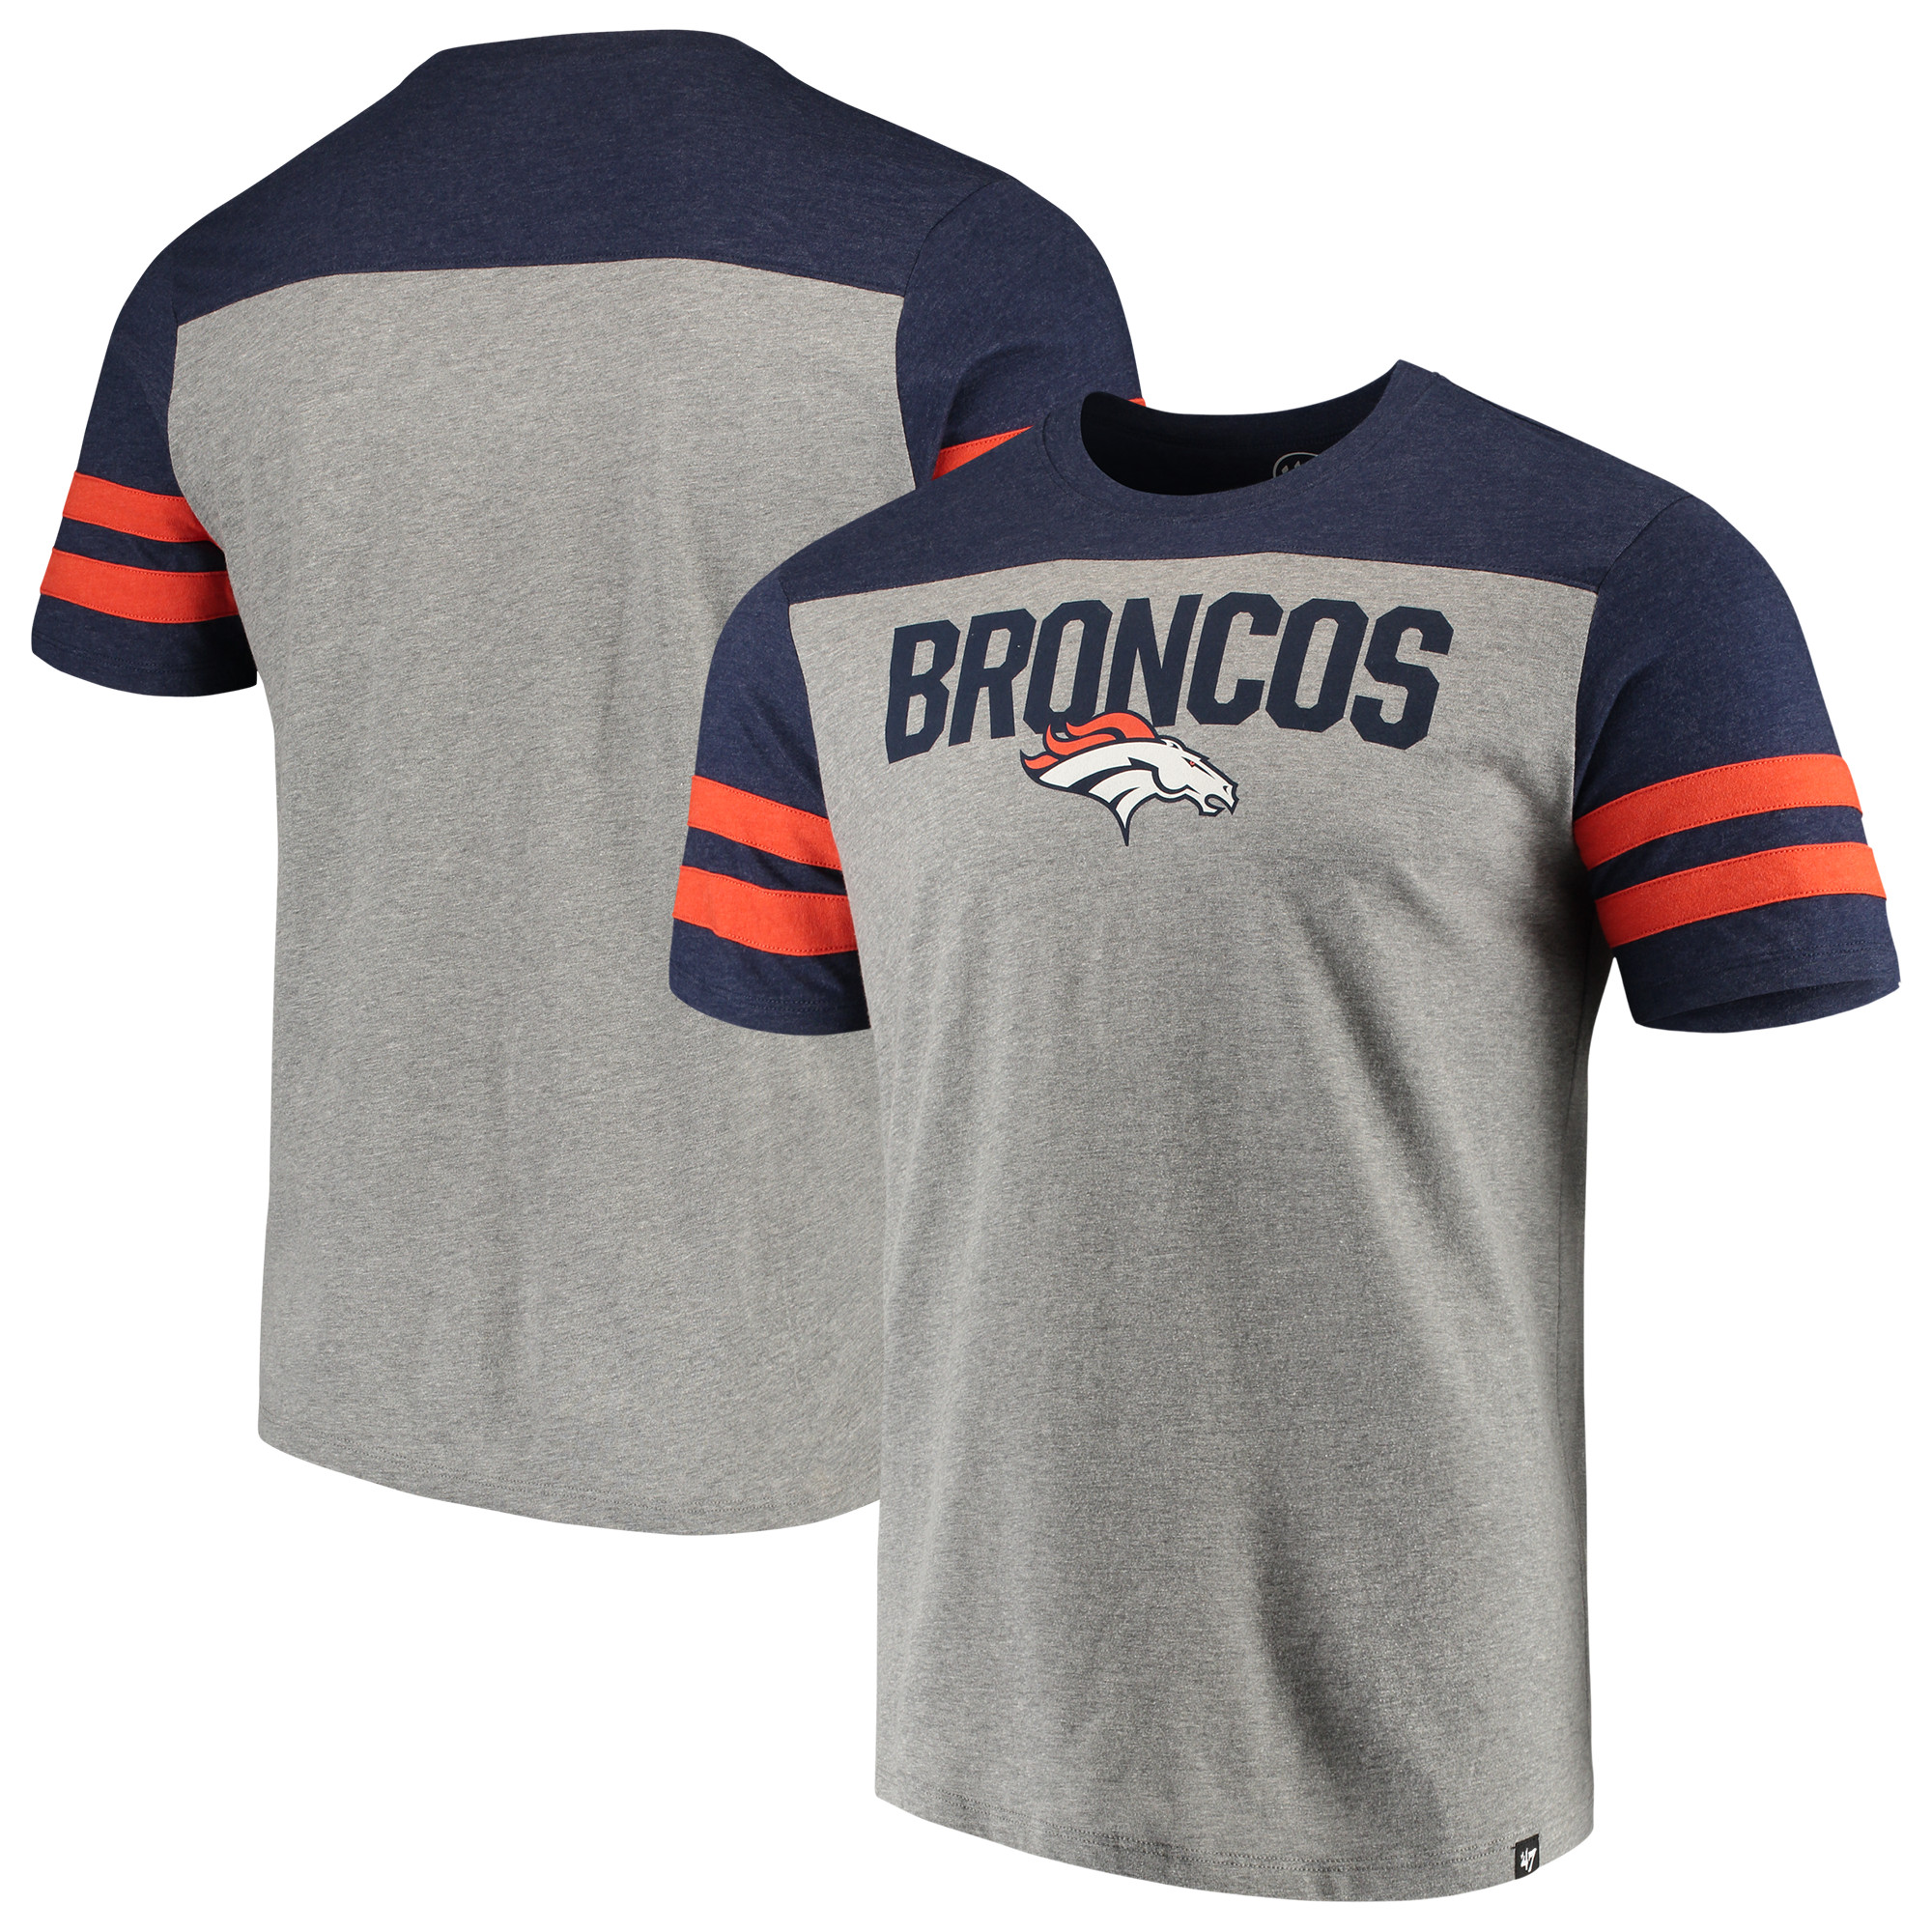 Denver Broncos '47 Versus Club T-Shirt - Heathered Gray/Heathered Orange